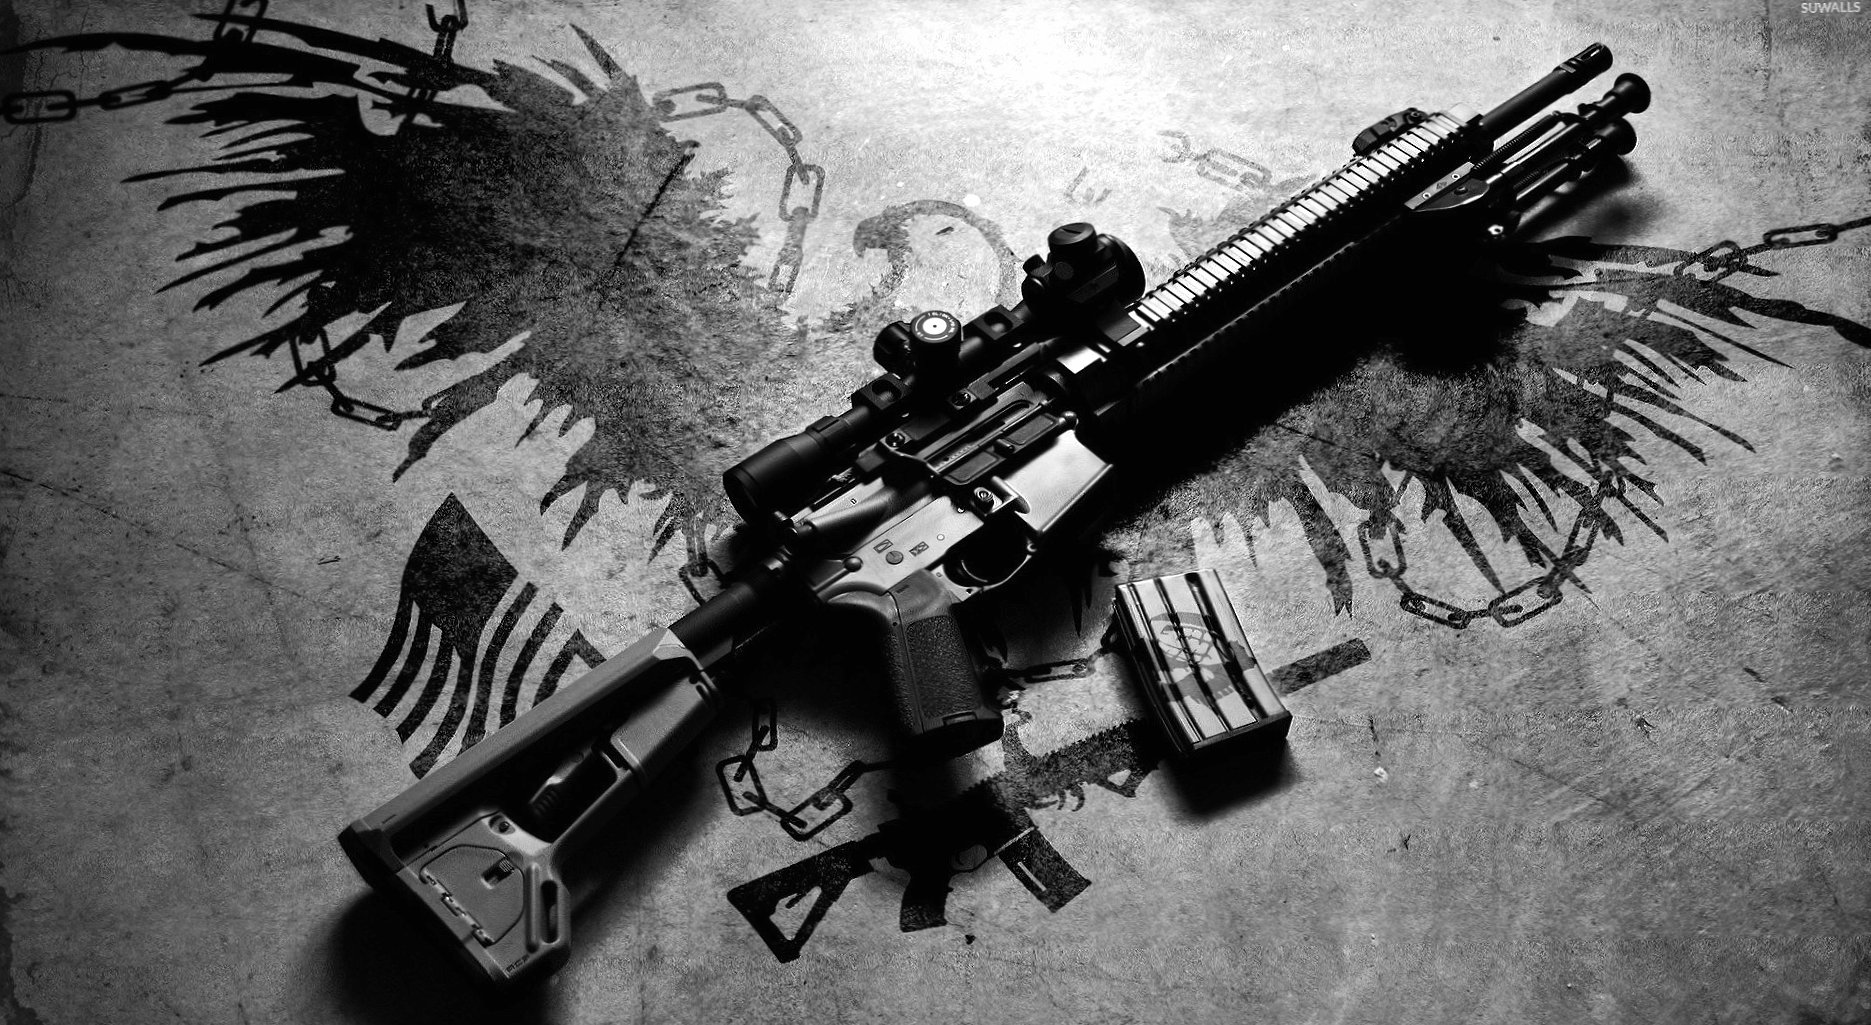 AR-15 rifle on the ground wallpapers HD quality